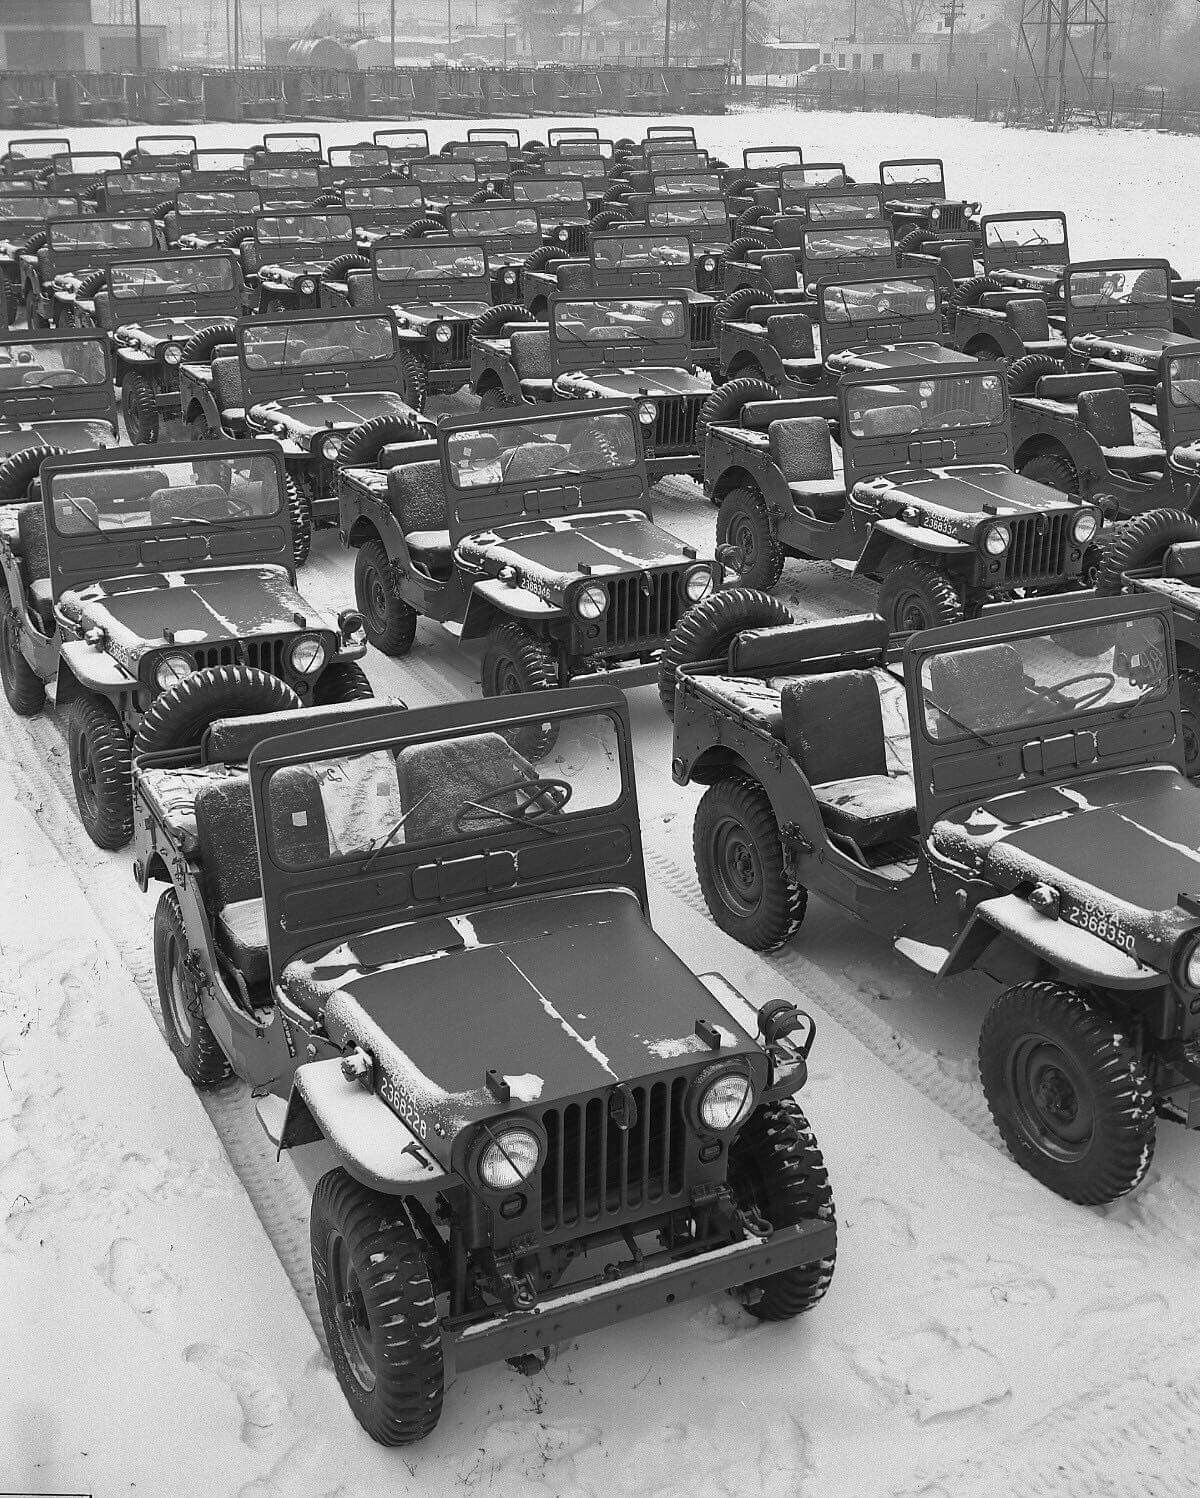 Brand new off the line WW2 Jeeps ready to take part in the war ...